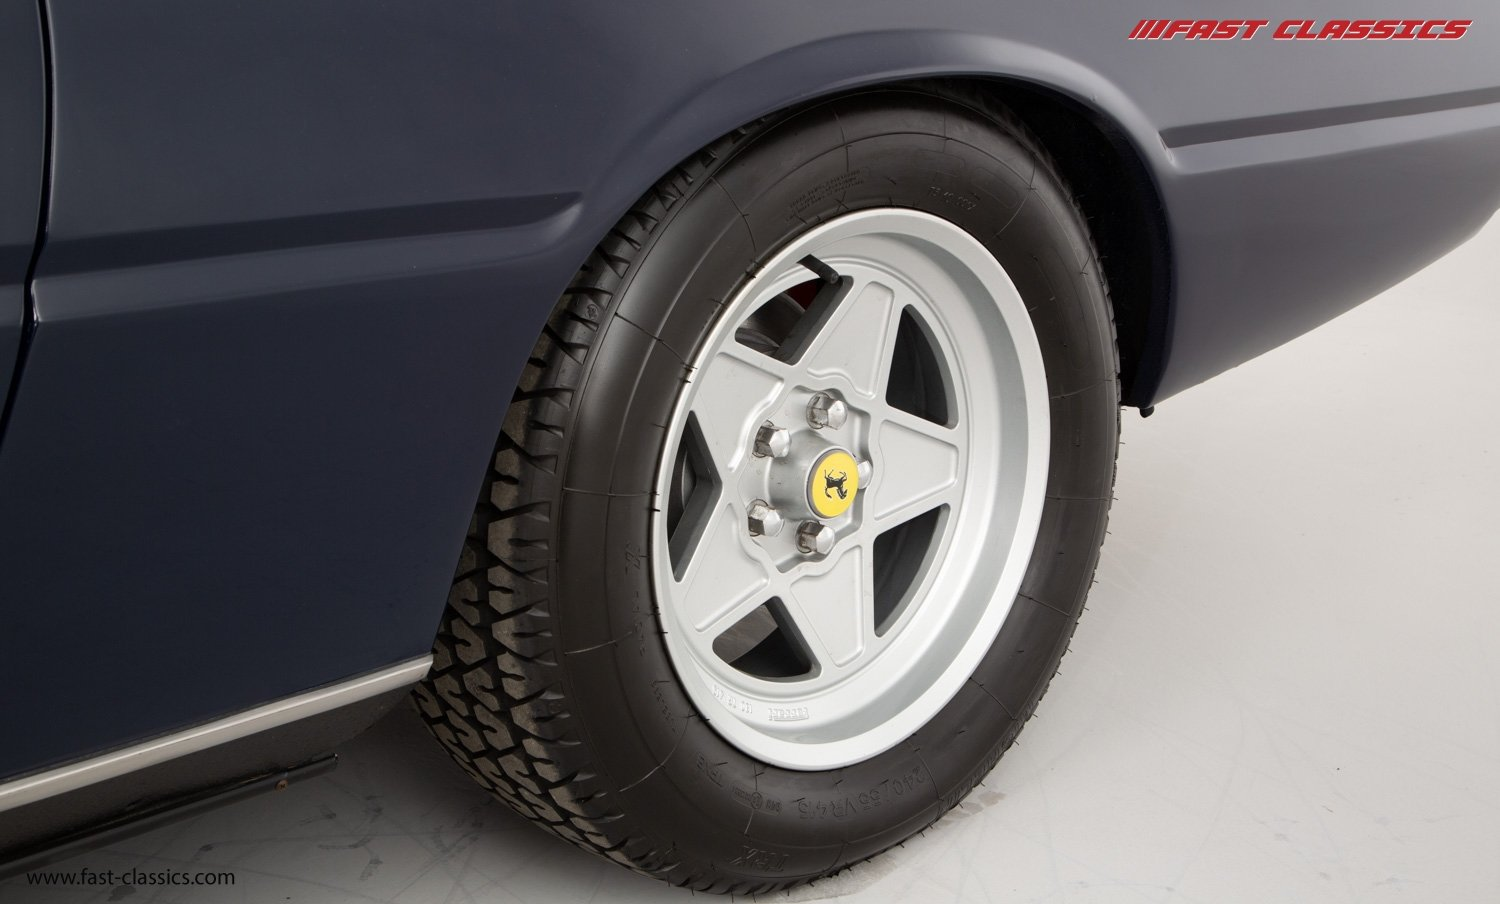 1980 FERRARI 400I // BLU POZZI // UK RHD // 1 OF 180 UK SUPPLIED For Sale (picture 19 of 21)